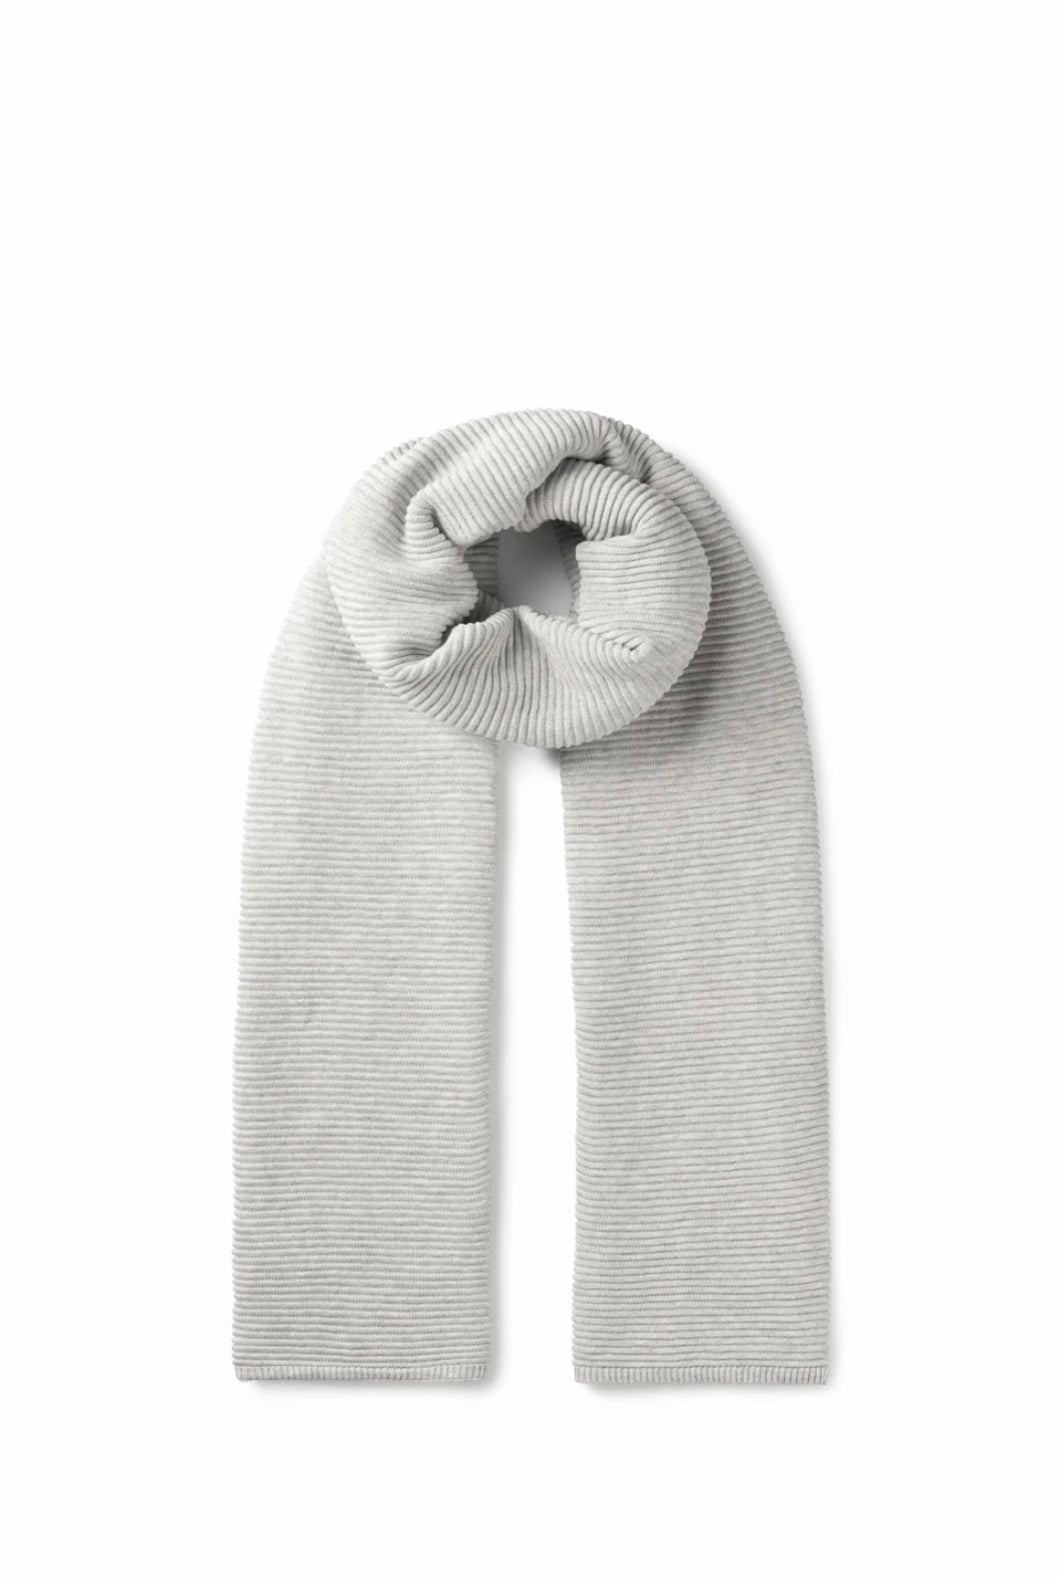 Tilly Scarf- Silver